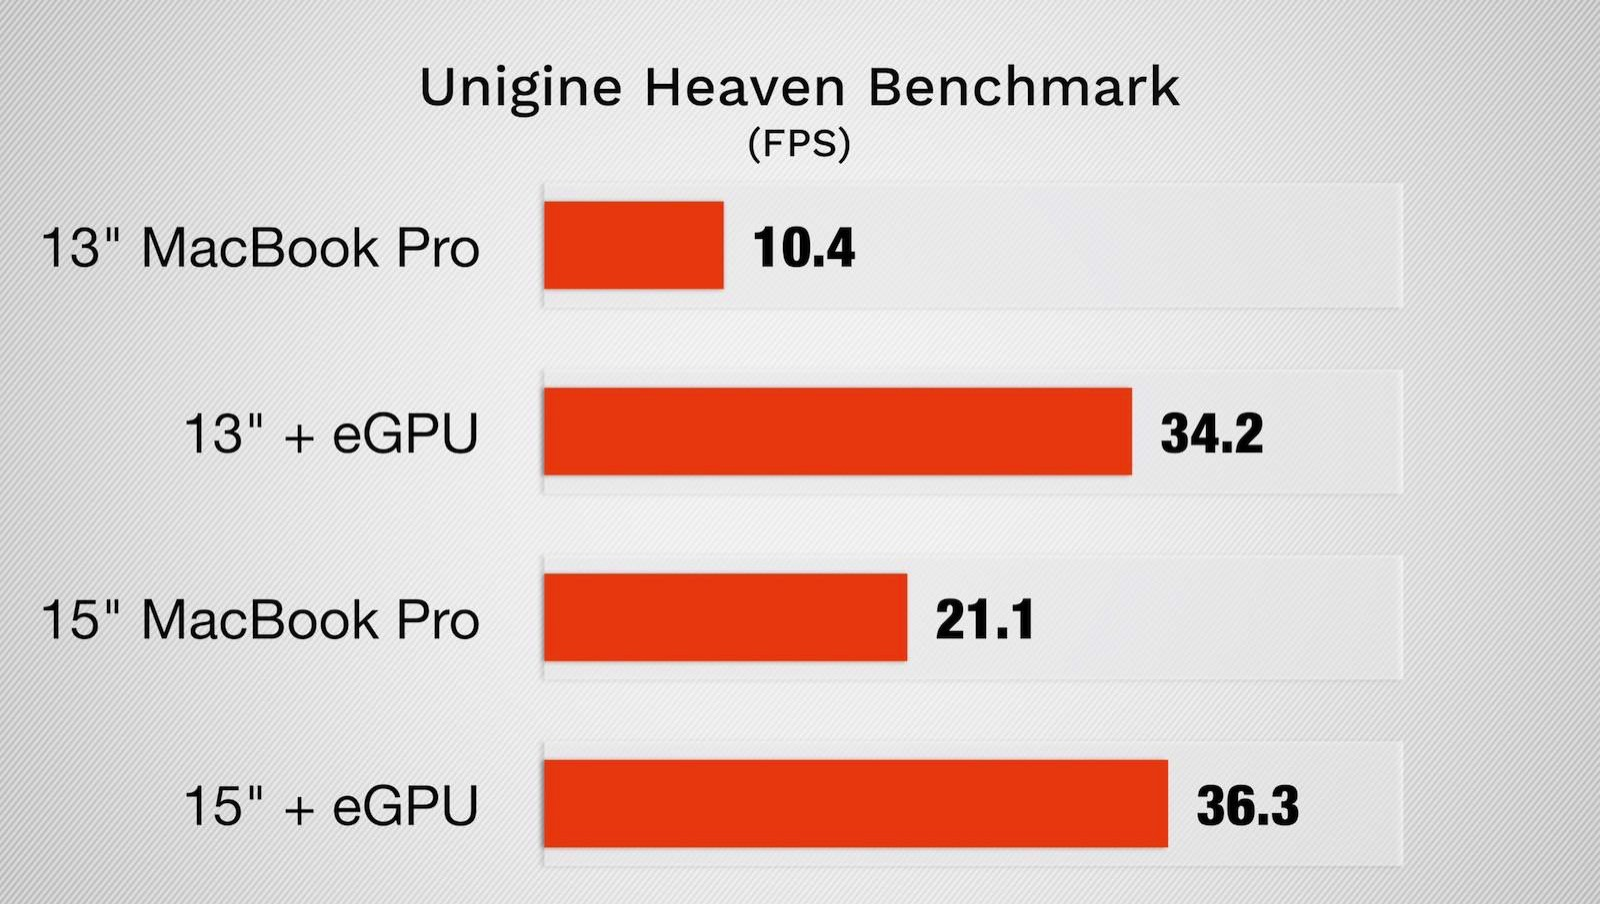 Blackmagic egpu is for 13inch not 15inch 1